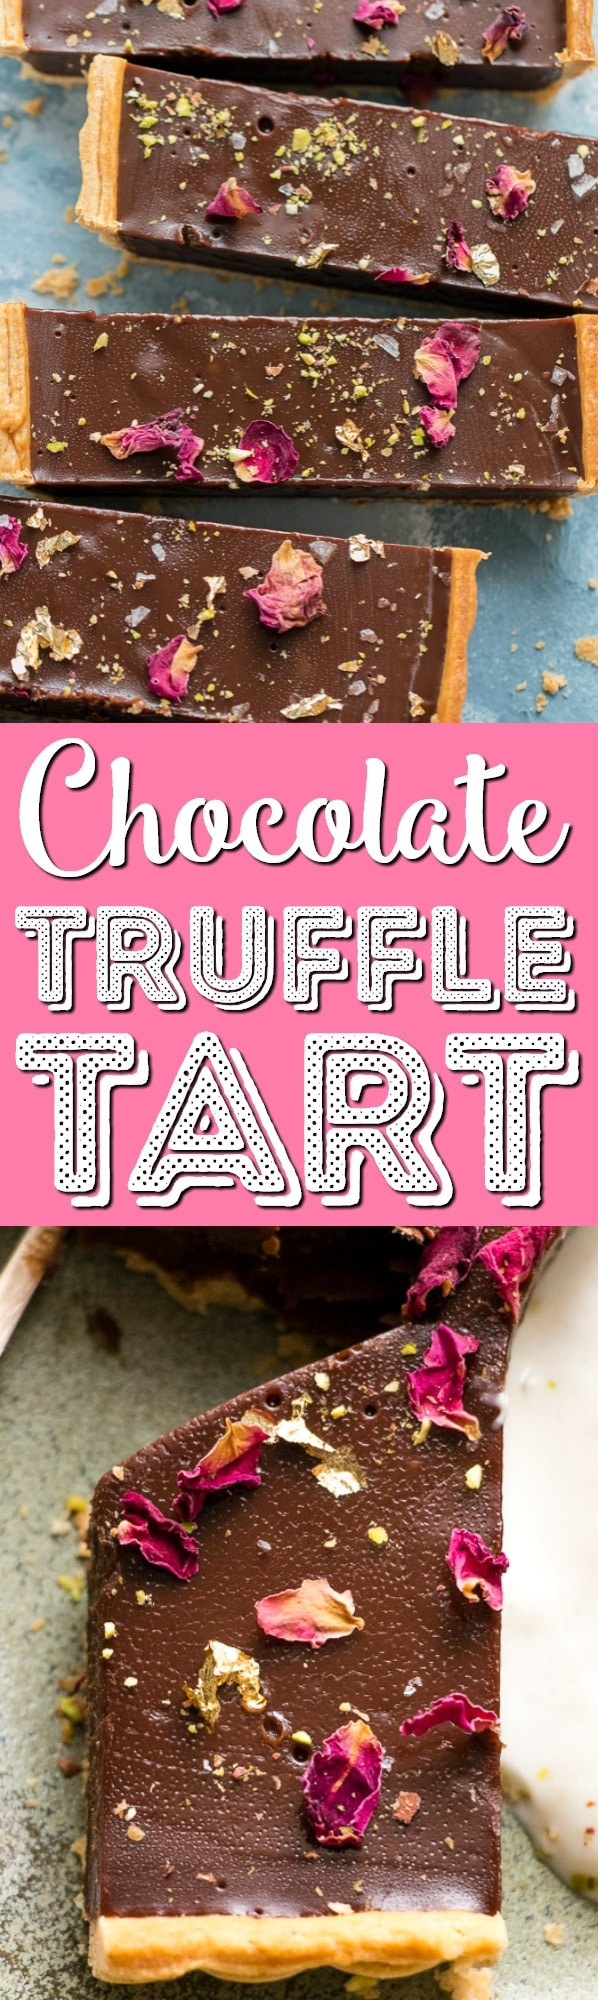 This is the creamiest dreamiest chocolate truffle tart that you will ever eat. Dark smooth chocolate, in a crispy flaky crust, topped with hazelnuts. via @sugarandsoulco